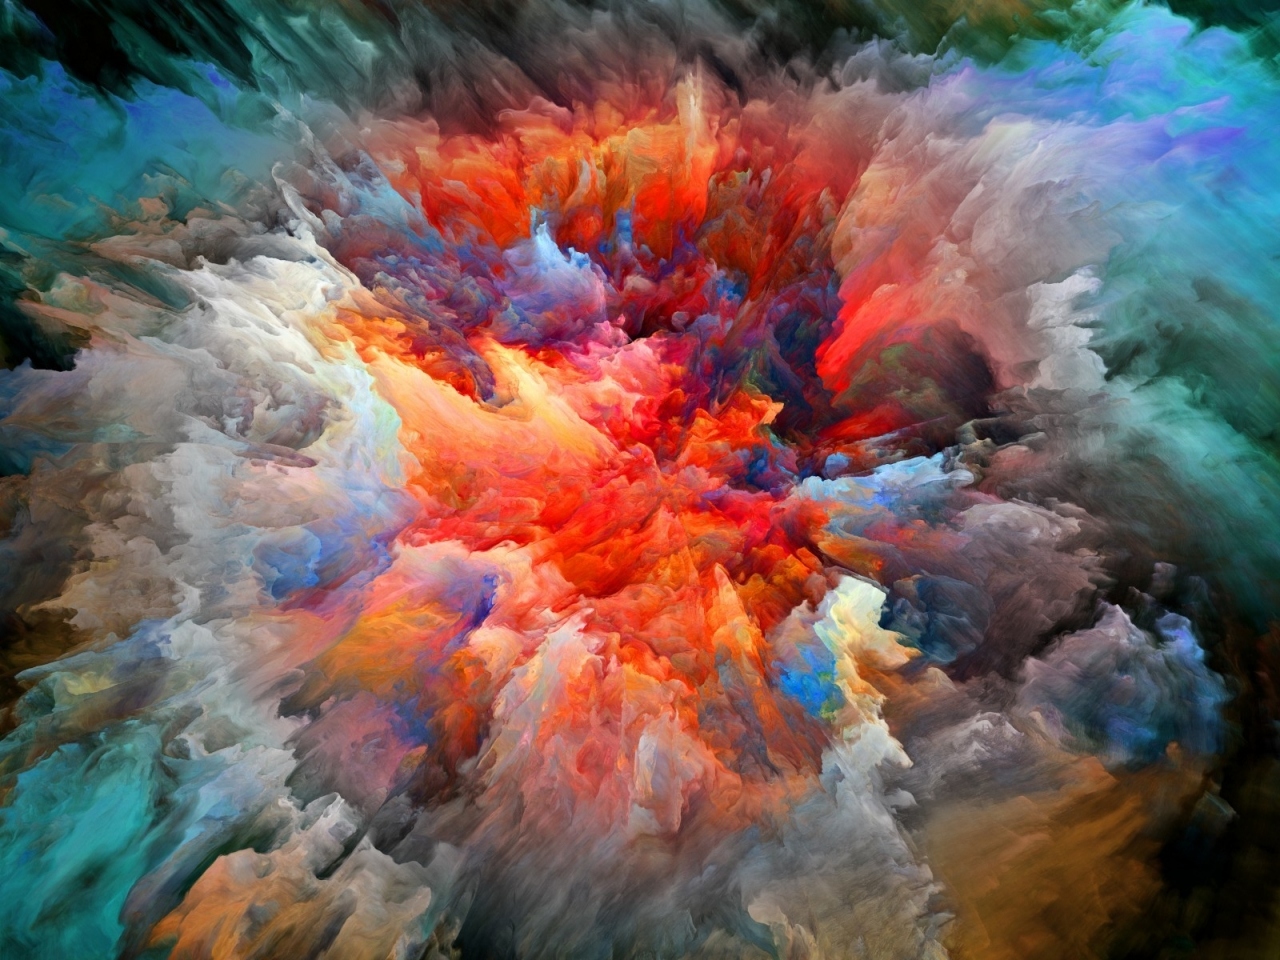 Explosion of Colors for 1280 x 960 resolution